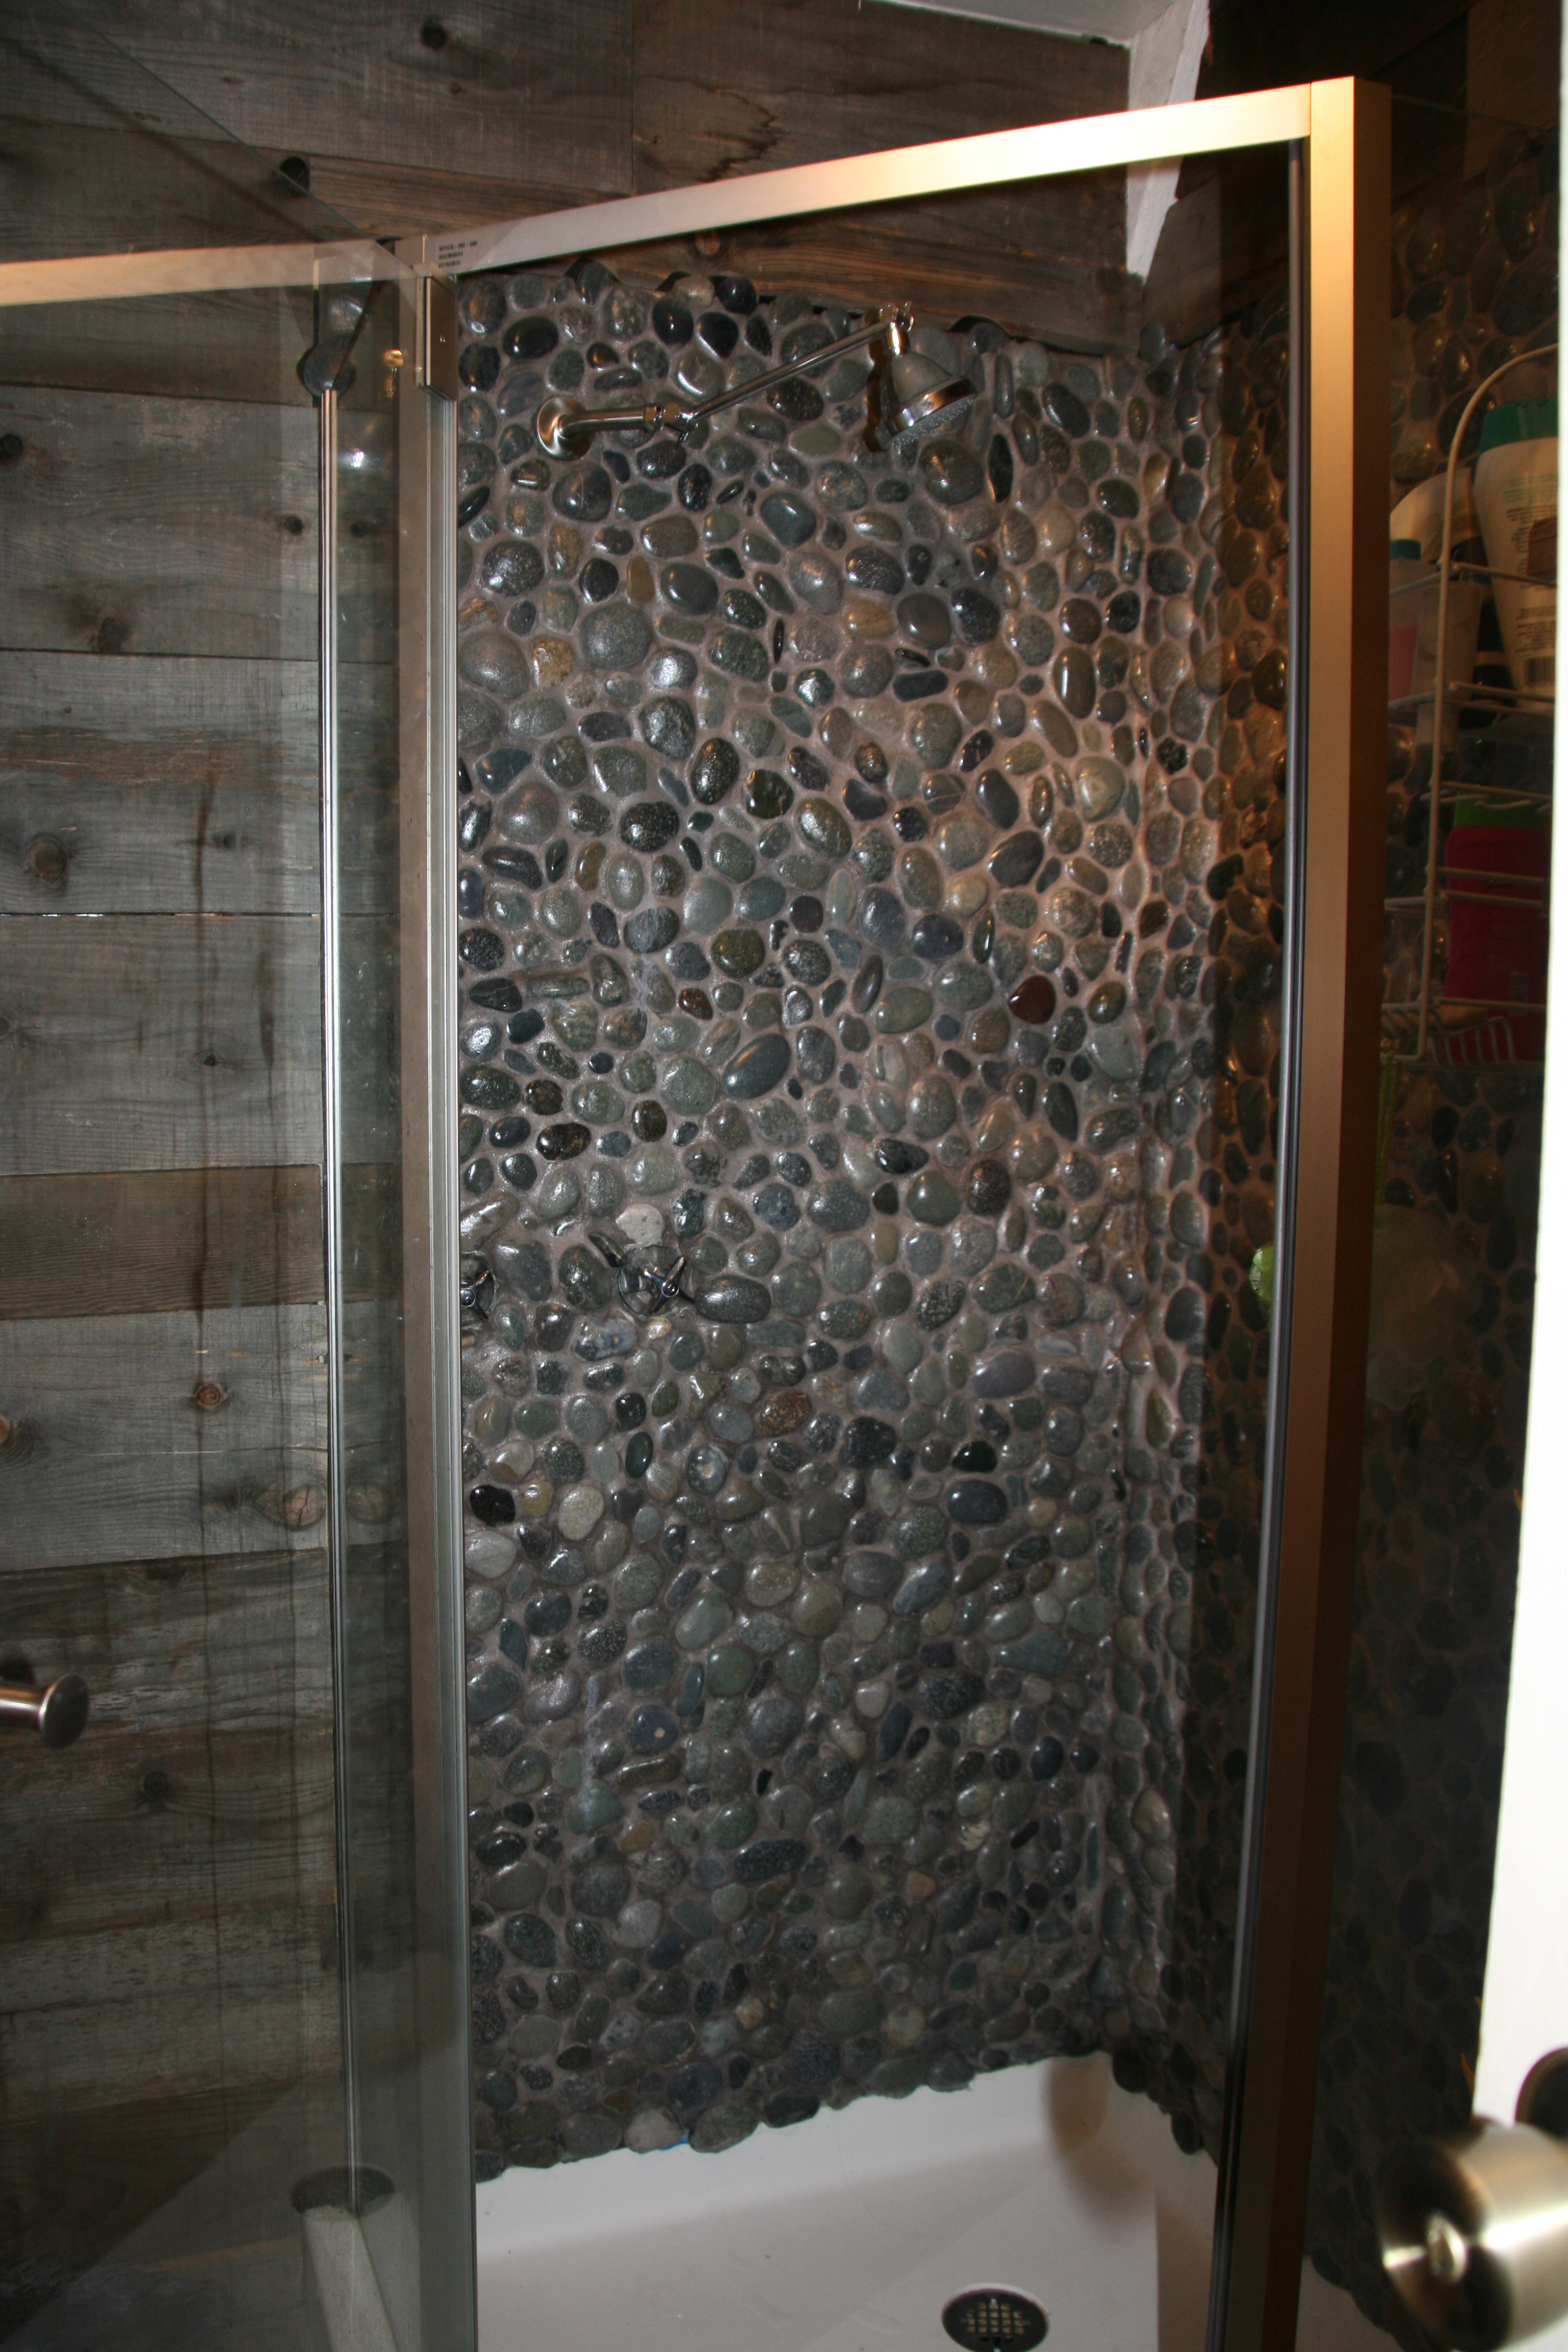 The Shower Walls Were Created Using The Same Rocks As The Countertop. They  Were Placed With Gray Thinset, Then Gray Grout Piped In Between Each Rock.